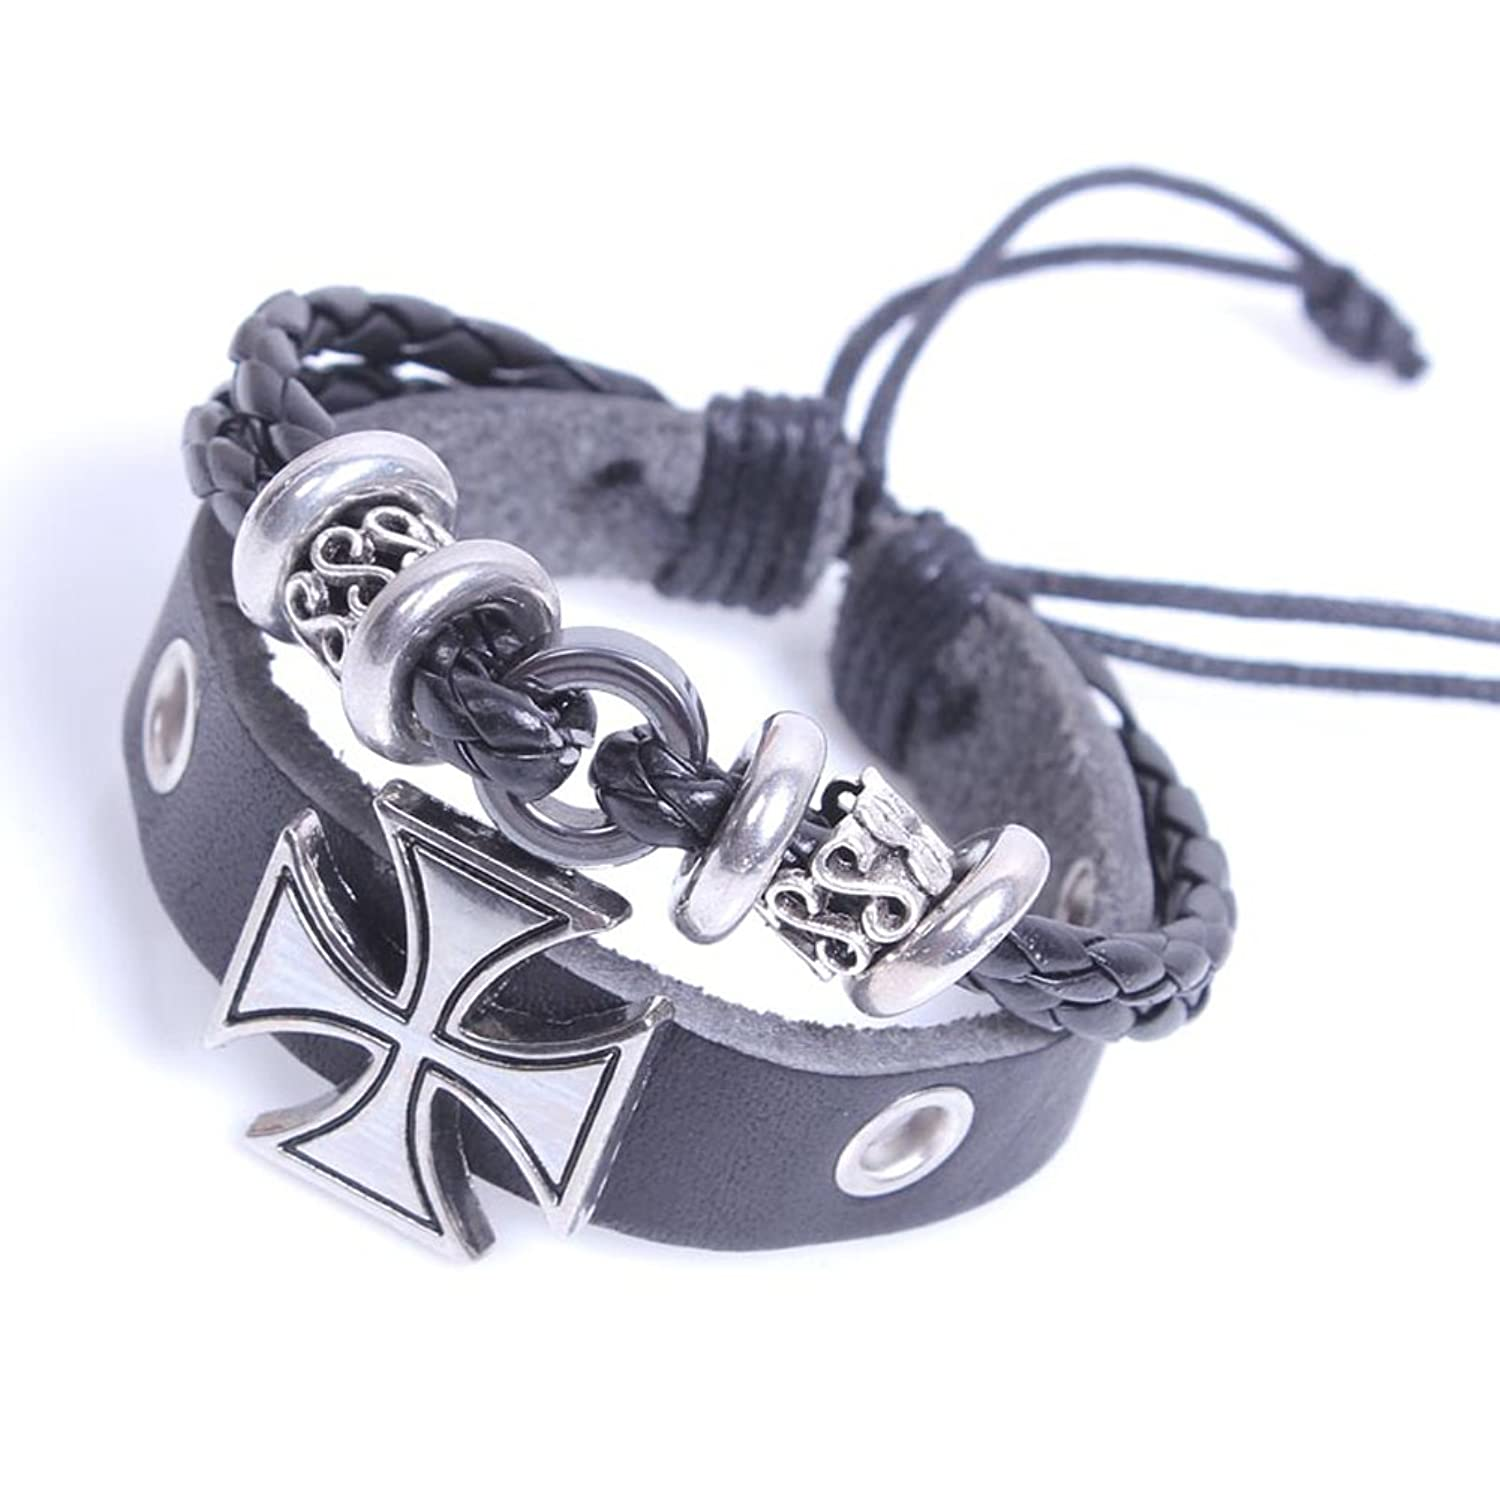 Europe-style Fashionable Cross Religious Leather Bracelet Adjustable Cuff Charm Bangle